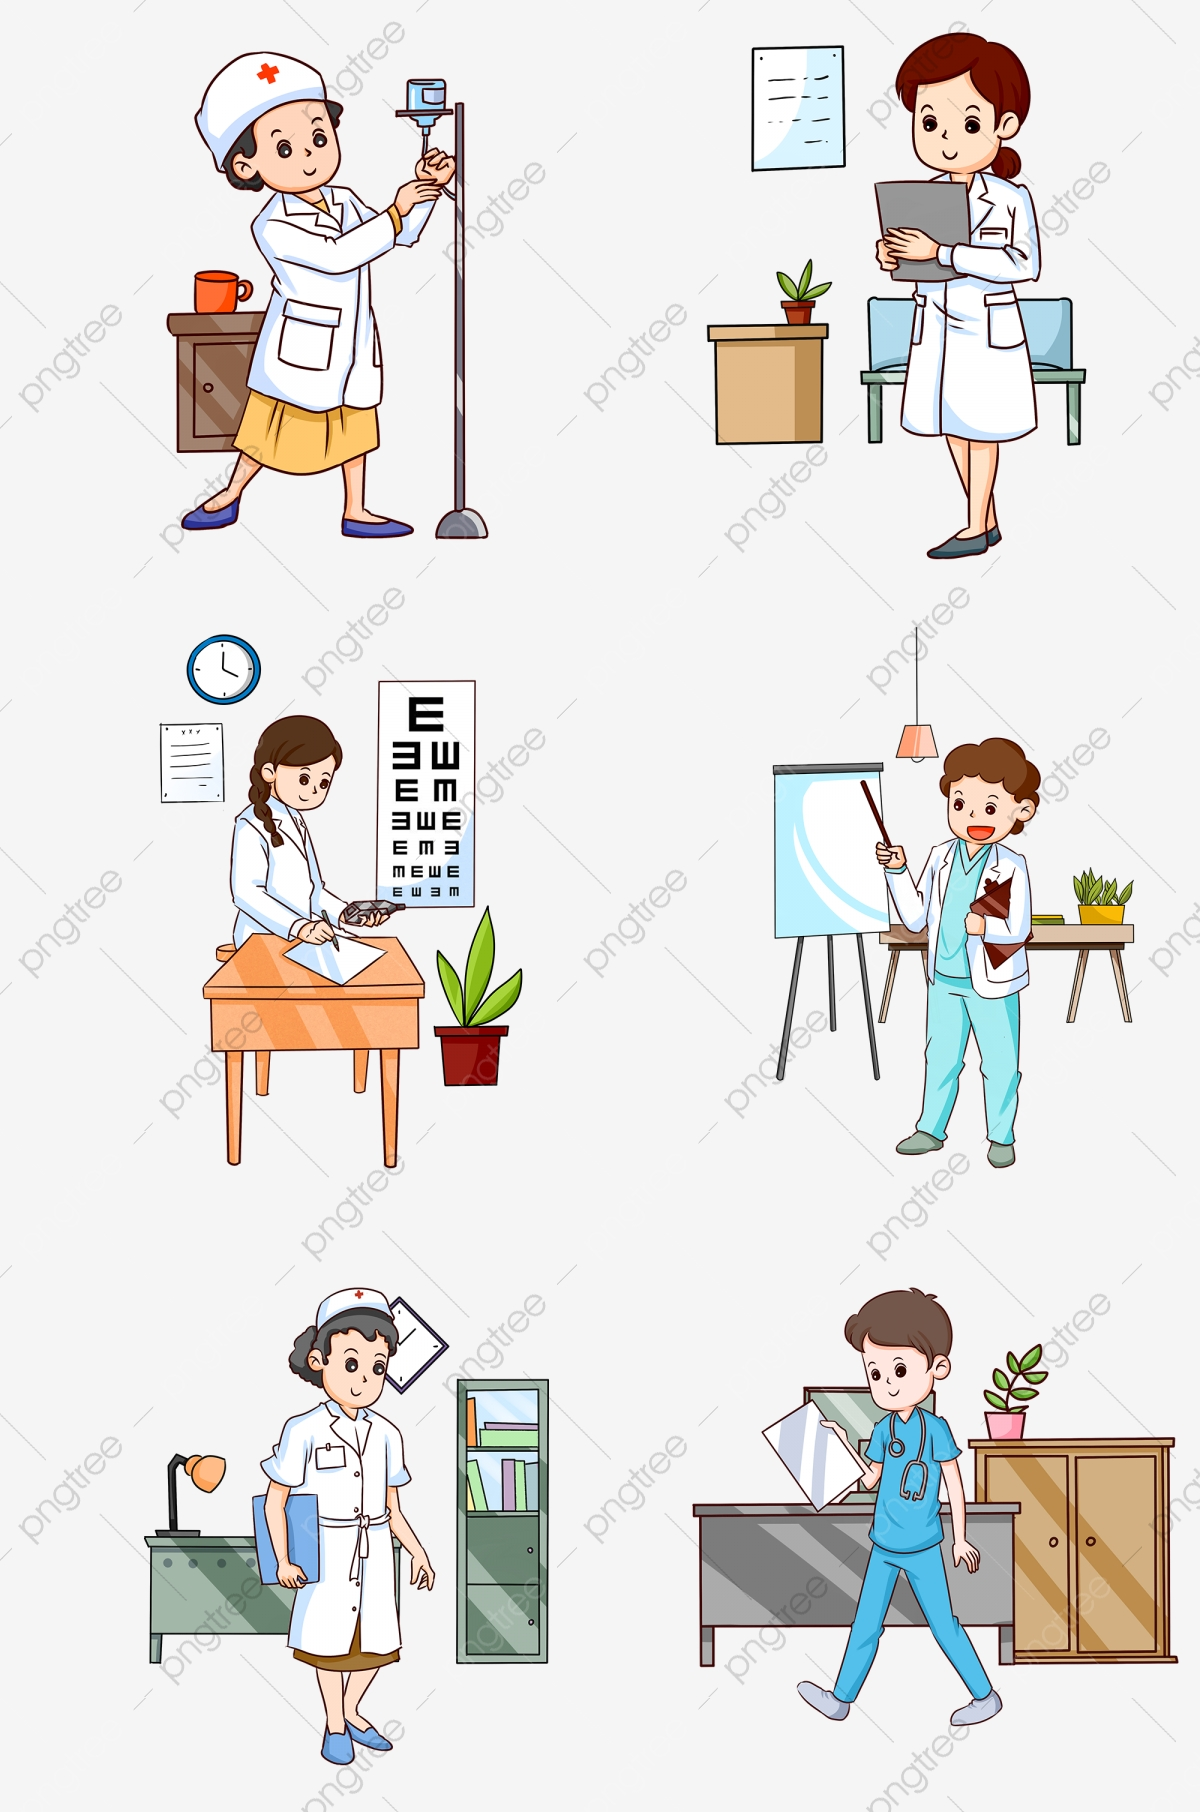 Cartoon Doctor Cartoon Nurse Doctor Comics Nurse Comics